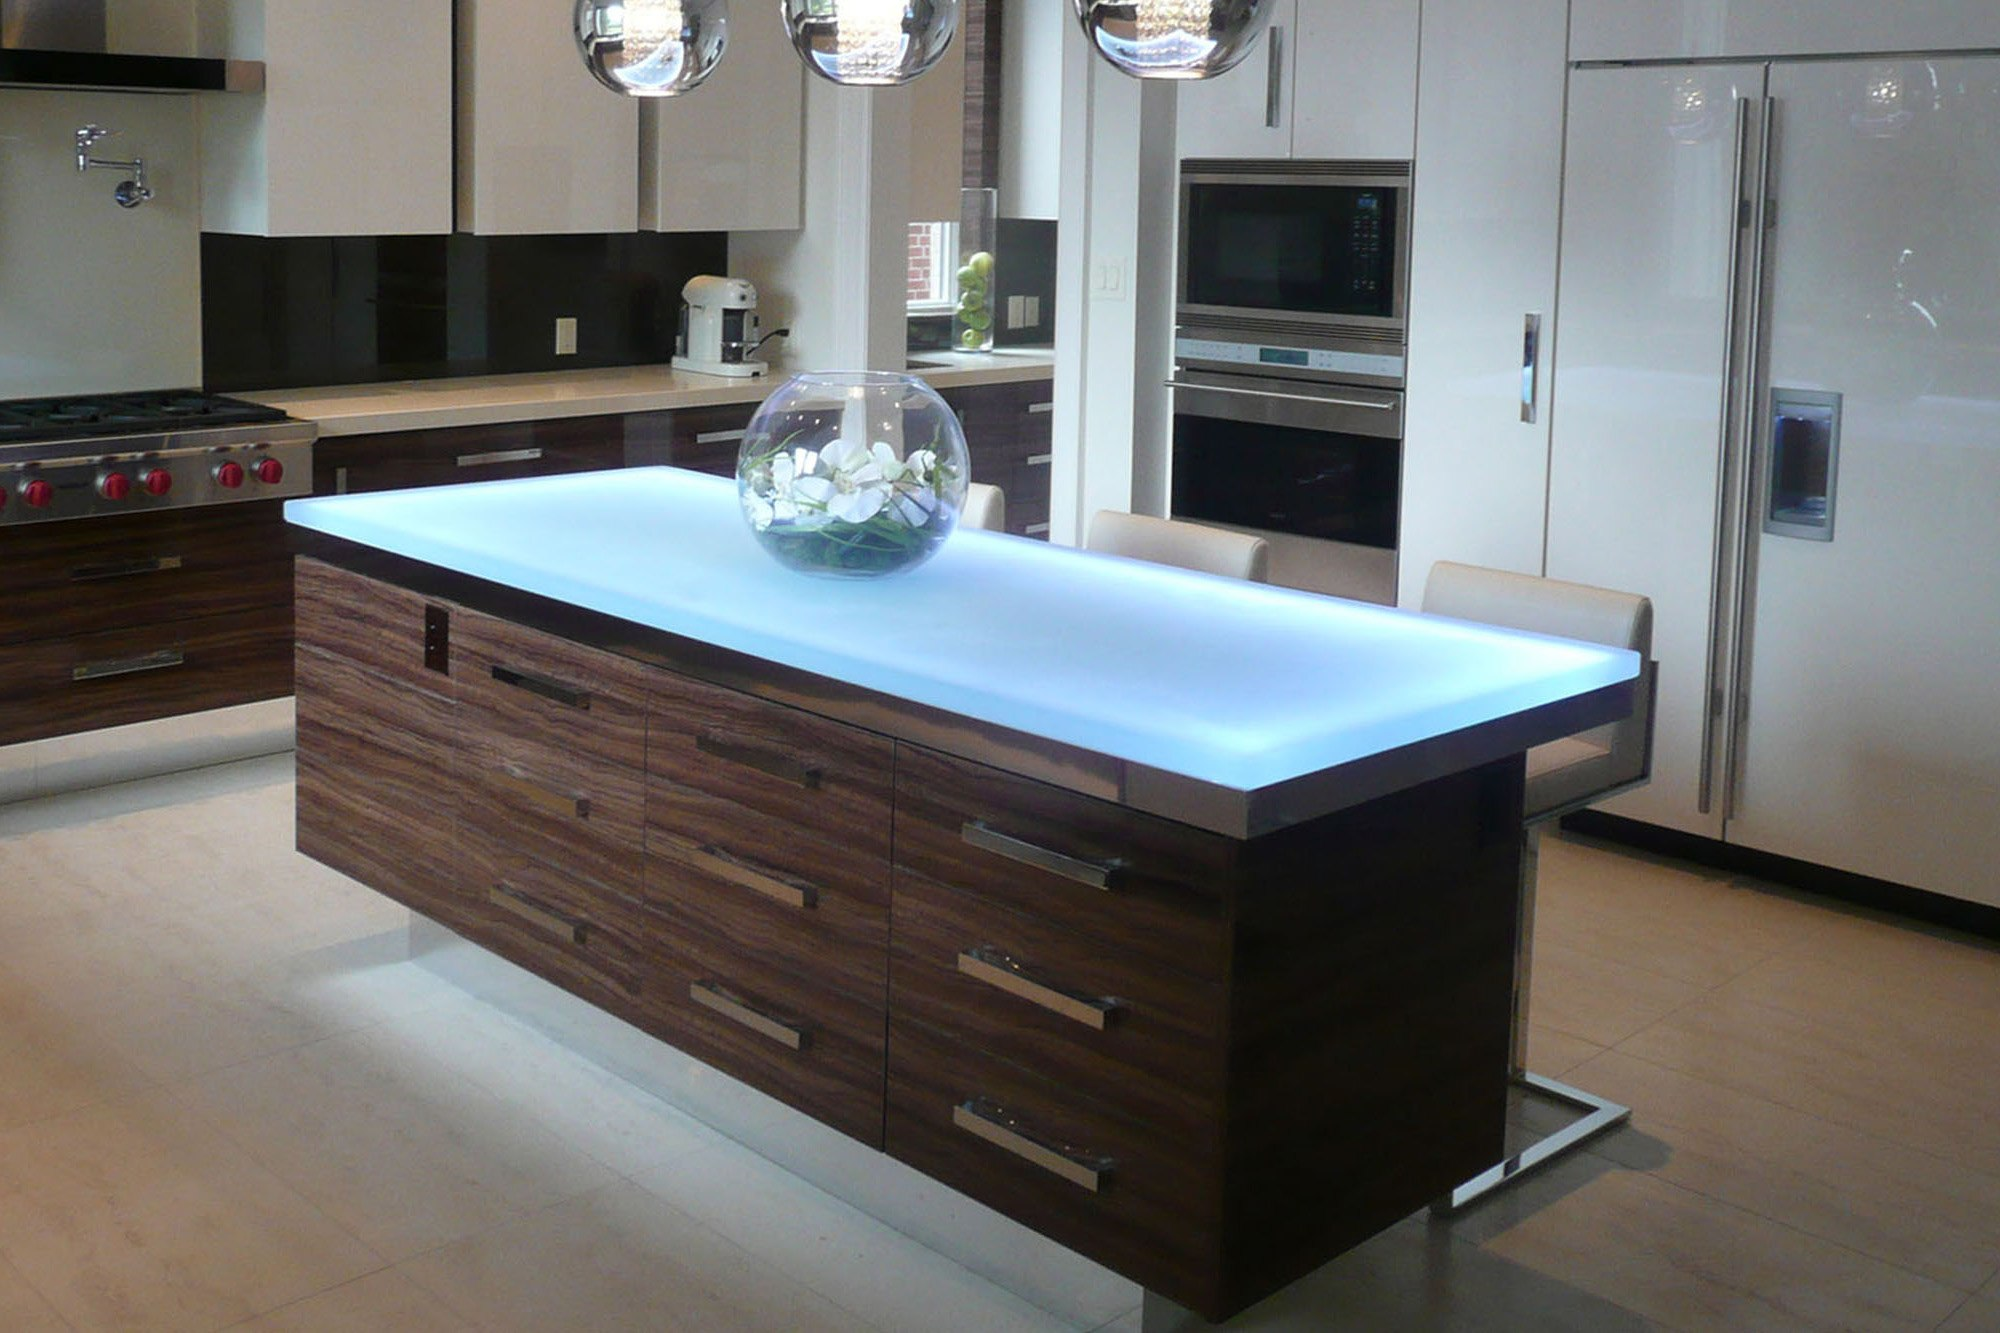 The Ultimate Luxury Touch For Your Kitchen Decor - Glass Countertops homesthetics (7)